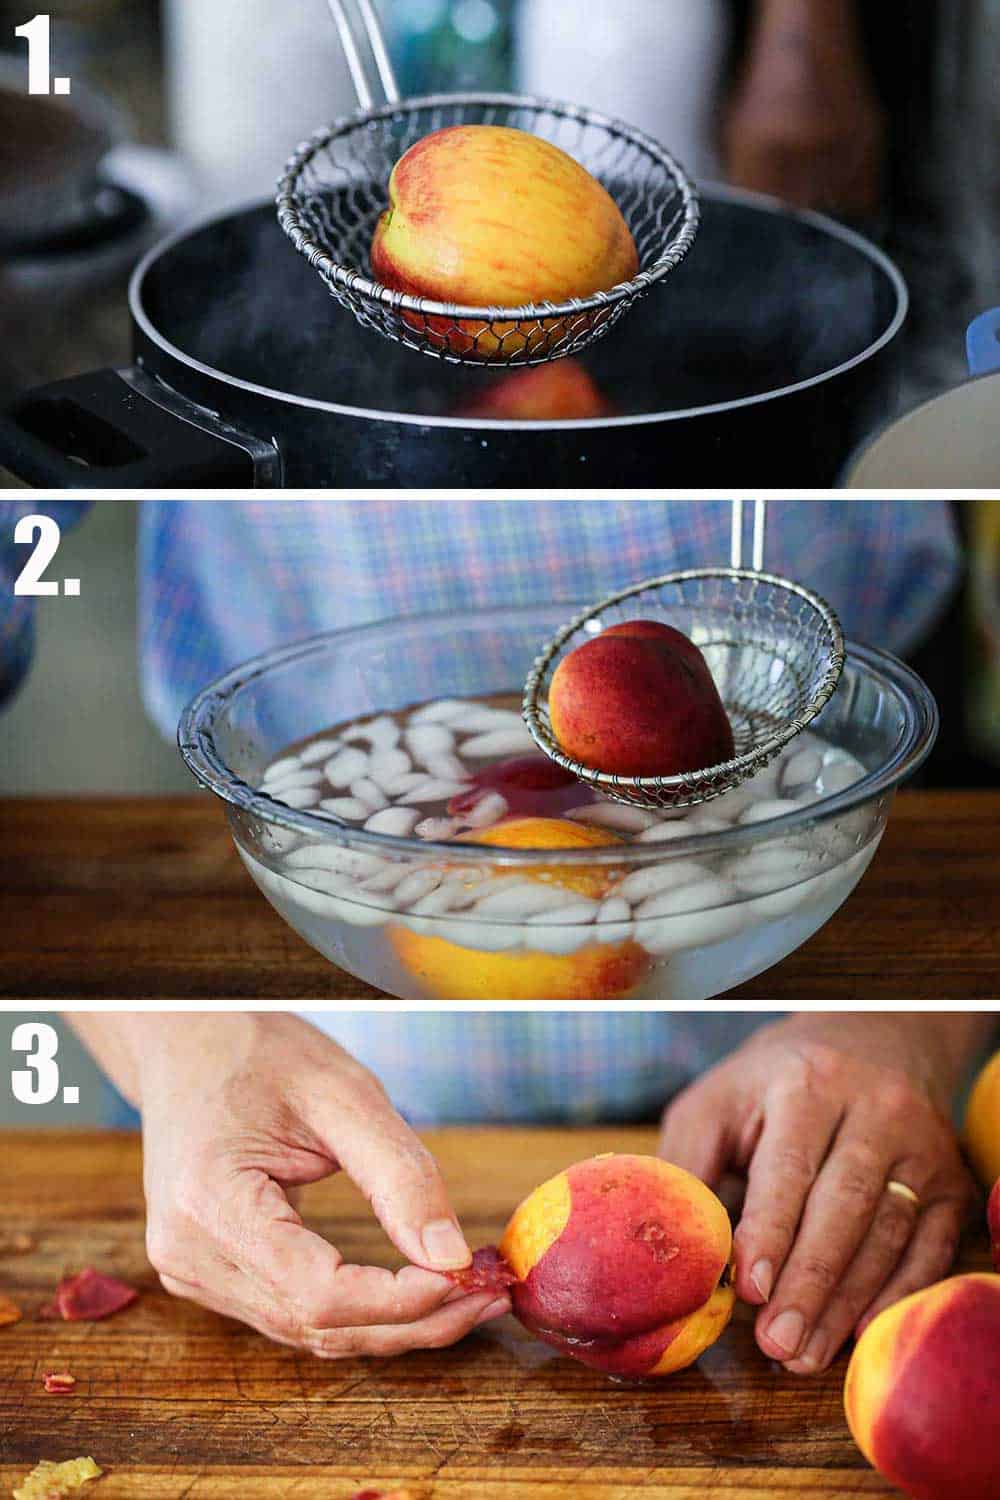 A kitchen spider holding up a peach over a pot of boiling water and then that peach being dropped into an ice bath and then a person peeling the peach.